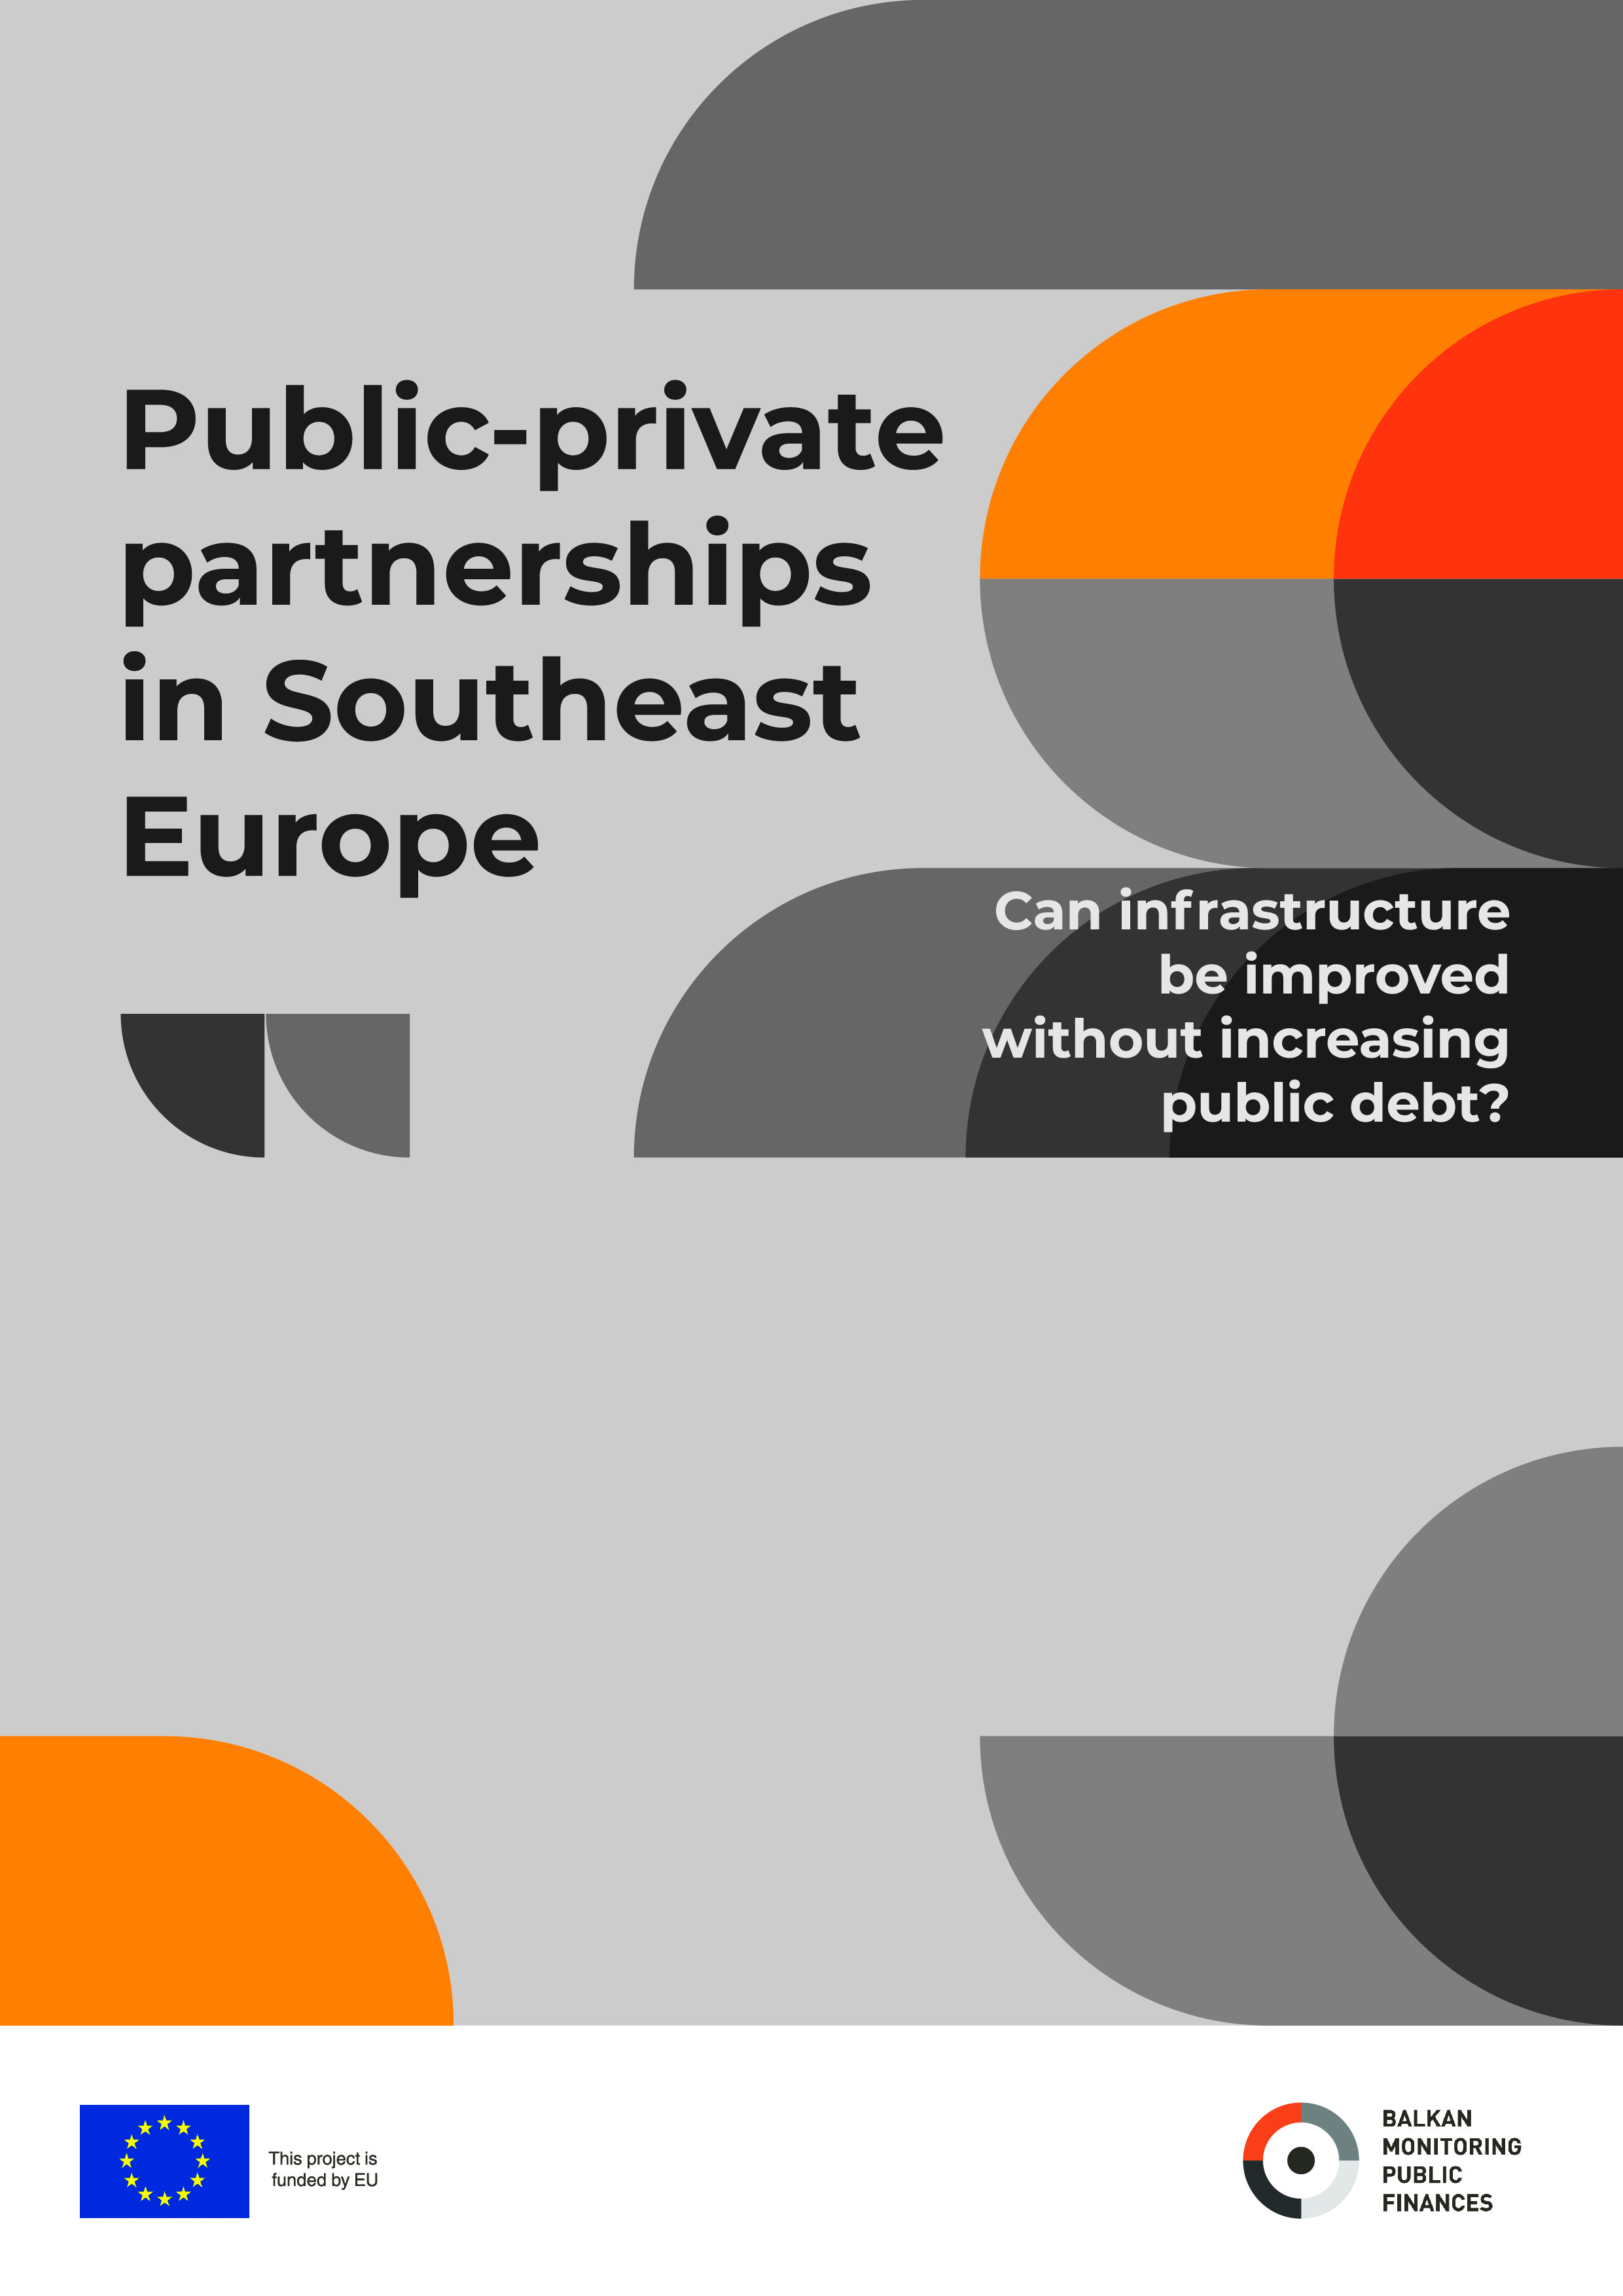 Krila nade - Public-private partnerships brief FRONT-01